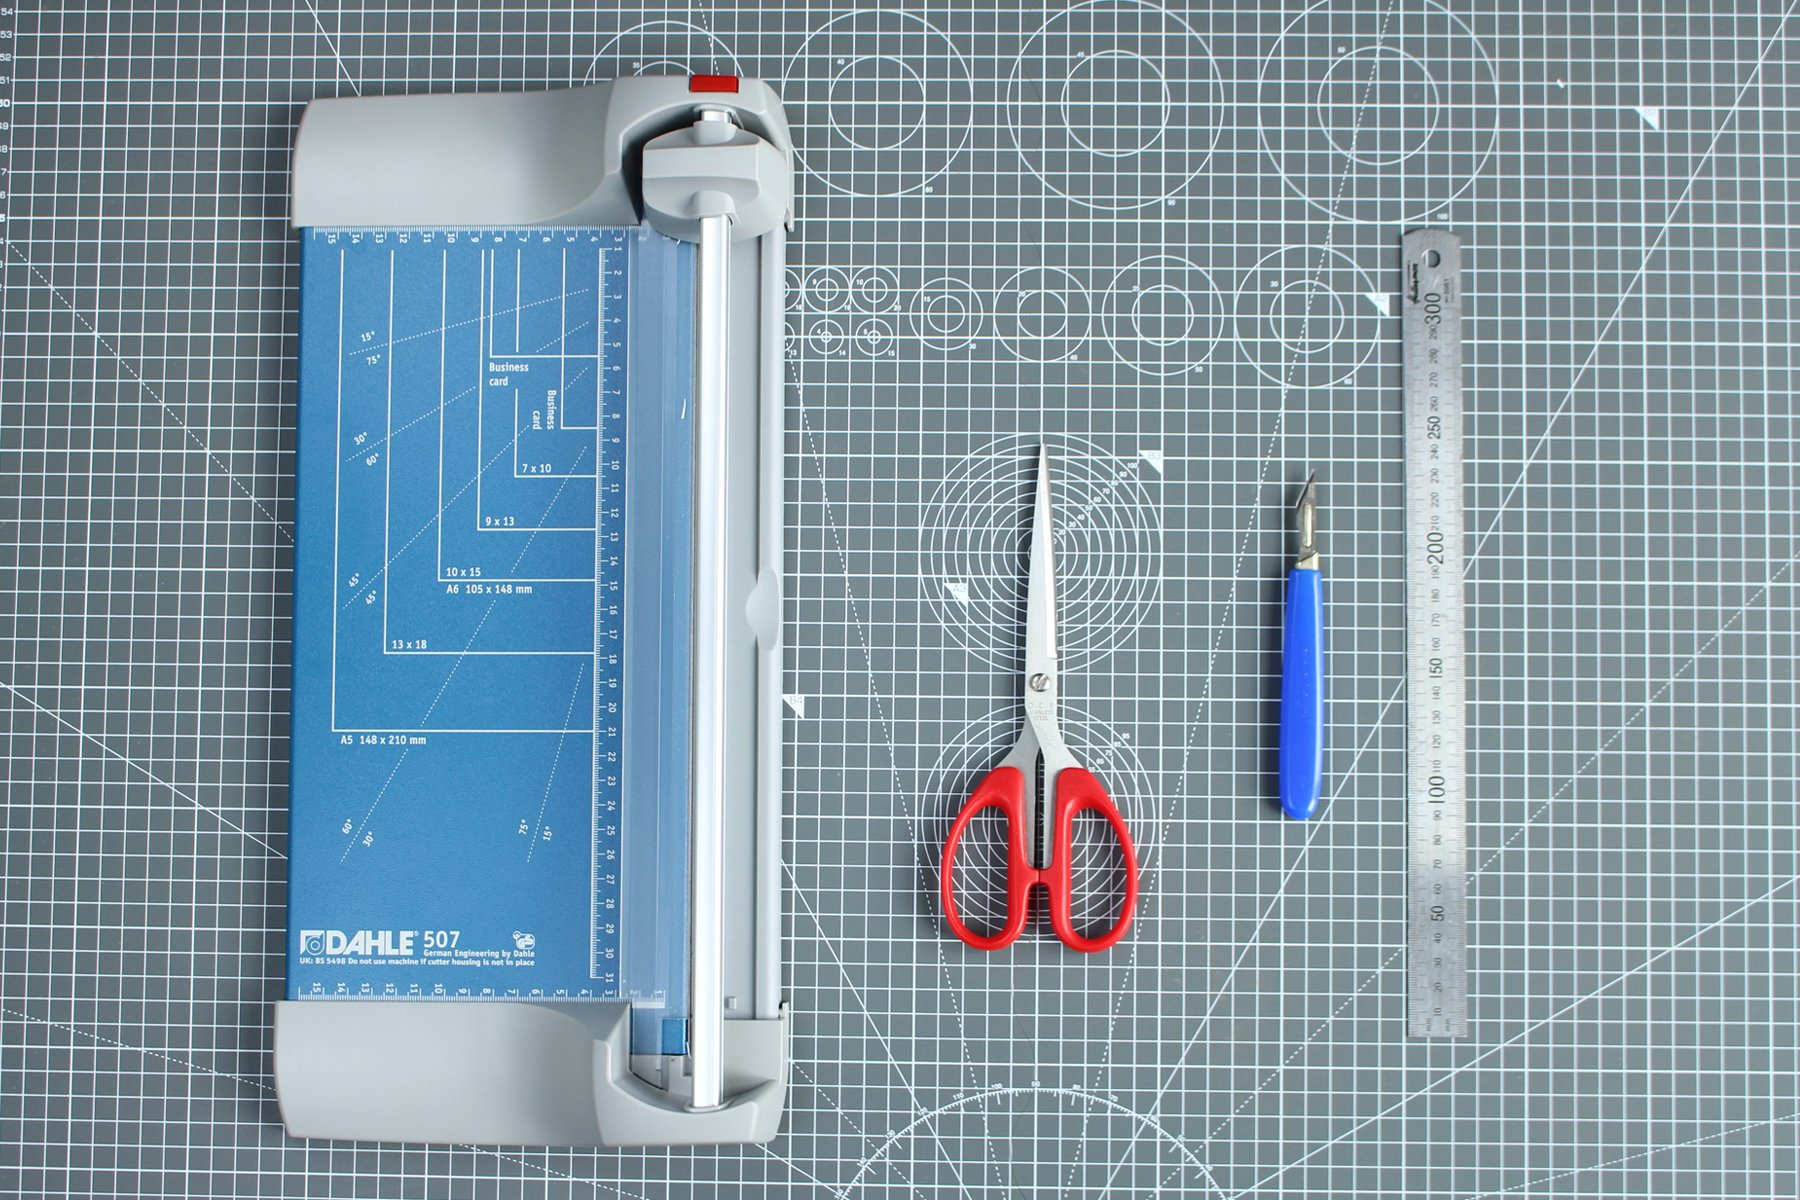 Cutting equipment for assembling pdf sewing patterns